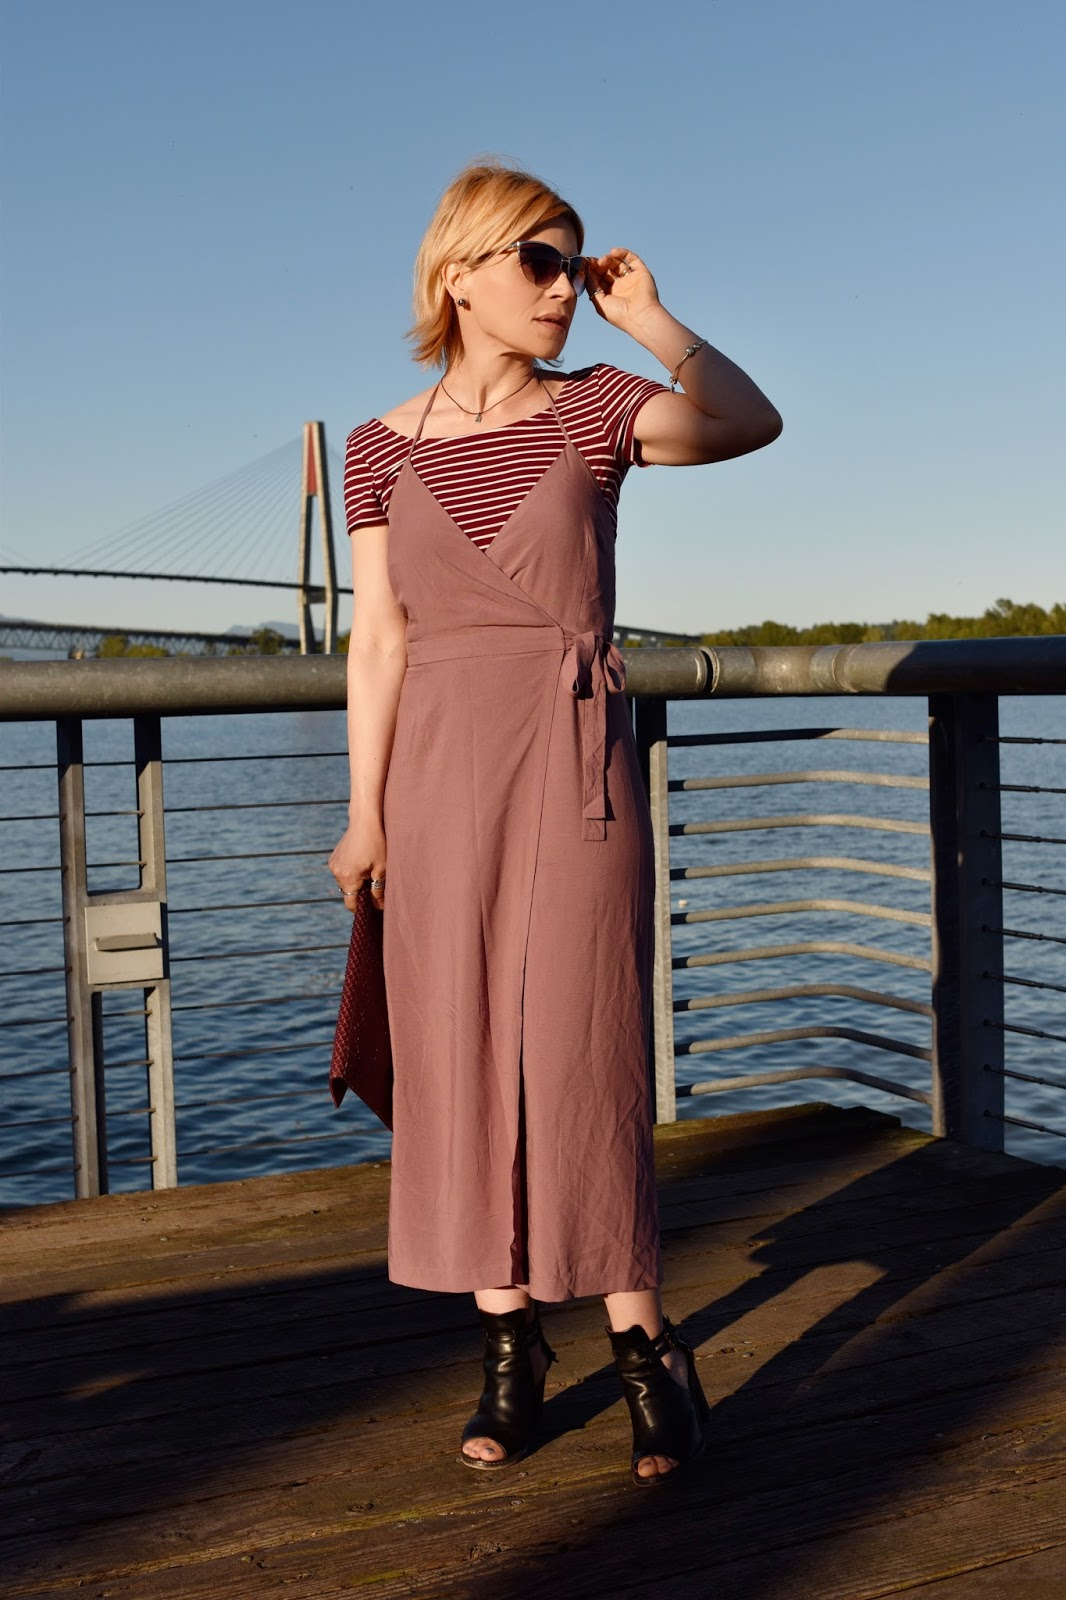 styling a mauve wrap slipdress over a striped tee, with cutout booties and an envelope clutch